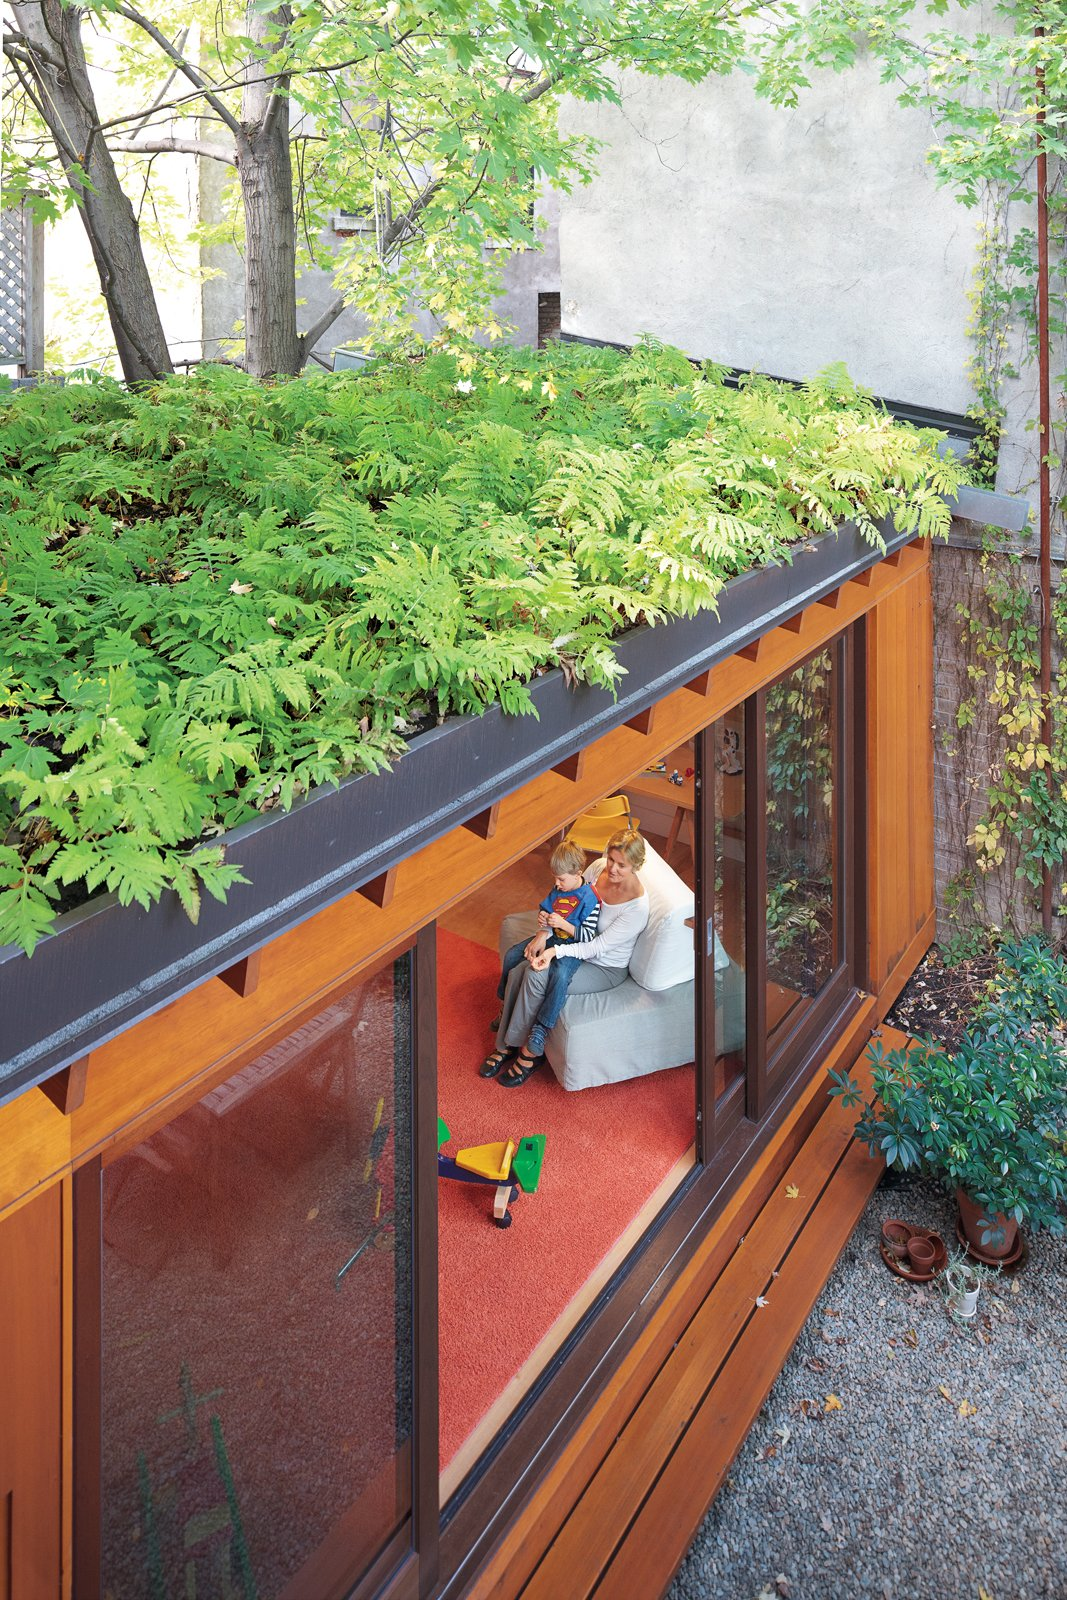 Exterior, House Building Type, and Green Roof Material A green roof also helps makes up for lost garden beds, while creating attractive, leafy views from the second and third floors. In summer, when the sliding doors are left wide open, indoor and outdoor spaces blend together.  Photo 4 of 12 in These 10 Green Roofs Bring Life—and So Much More—to These Modern Structures